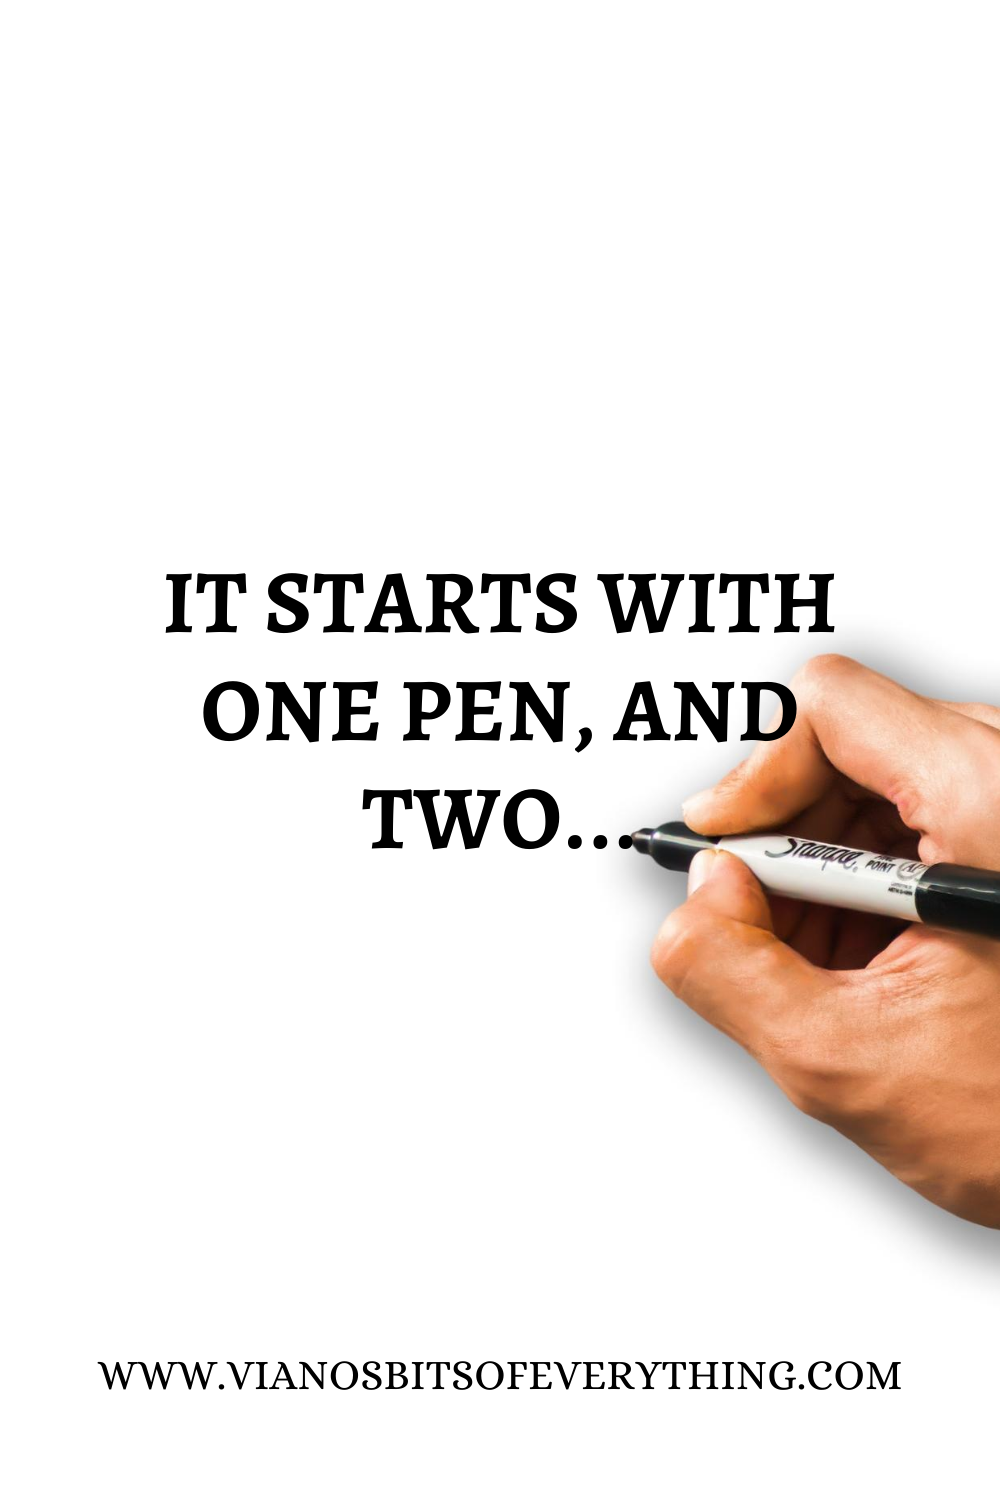 It Starts with One Pen, and Two…